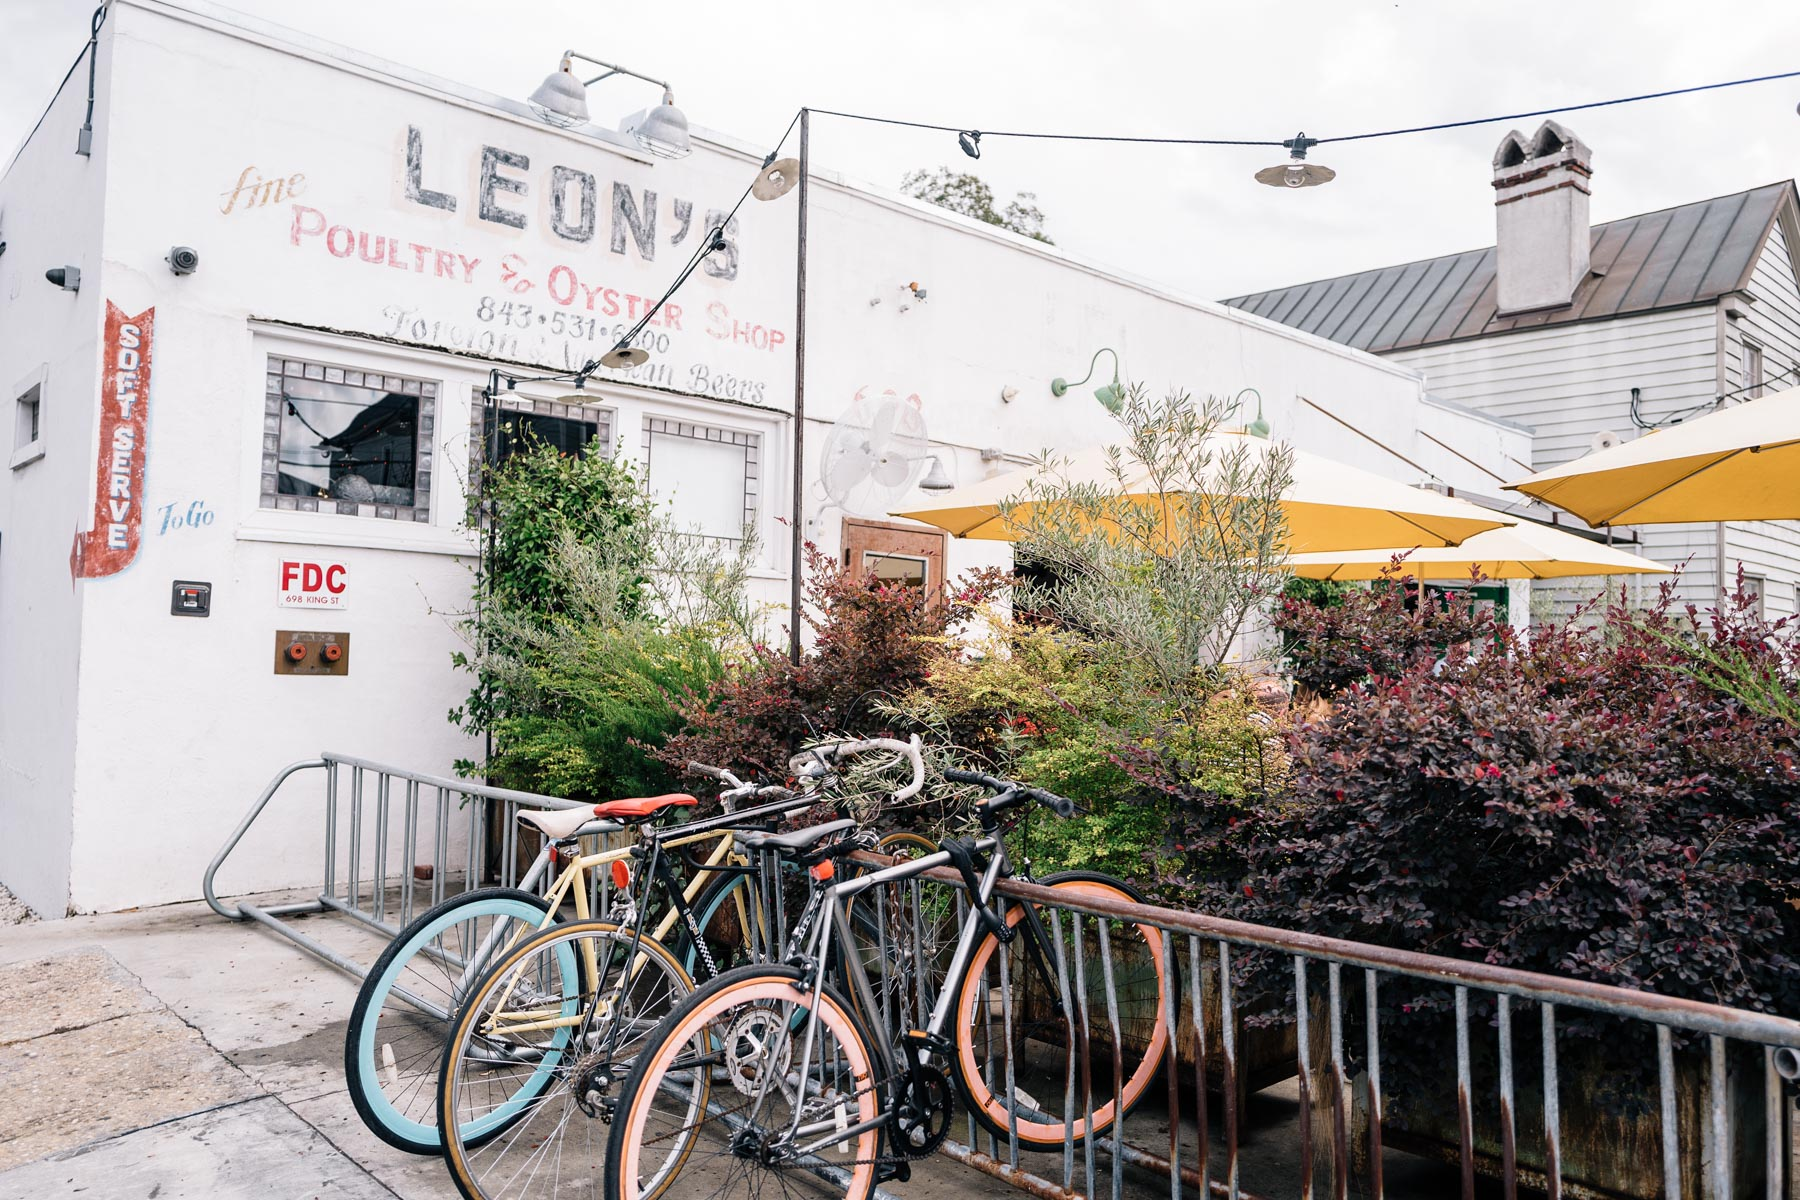 Jess Ann Kirby suggests stopping at Leons Oyster Bar in Charleston South Carolina